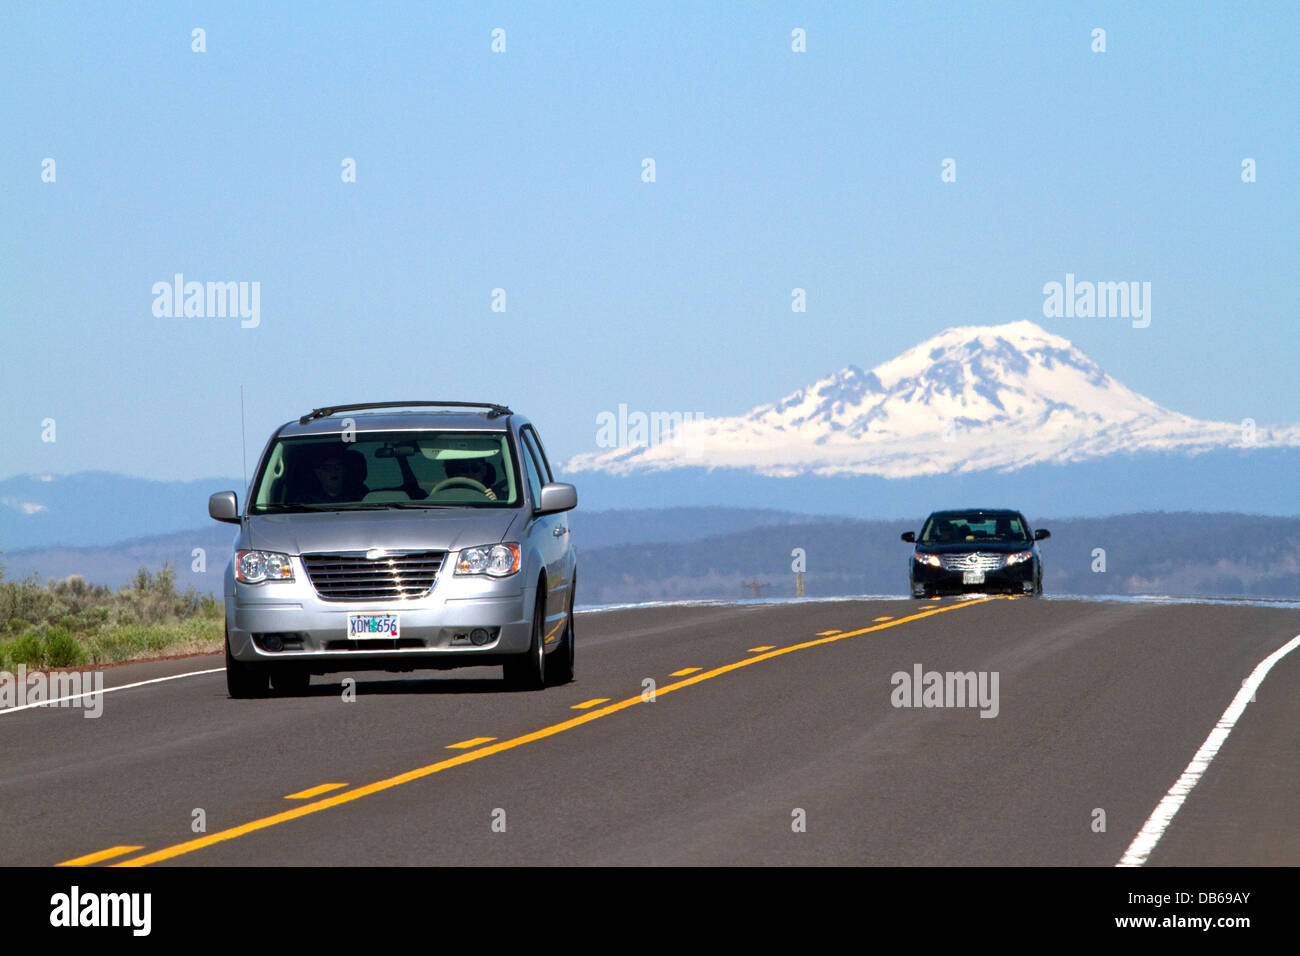 Billet d'automobiles sur la route 20 est de Bend, Oregon, USA. Photo Stock